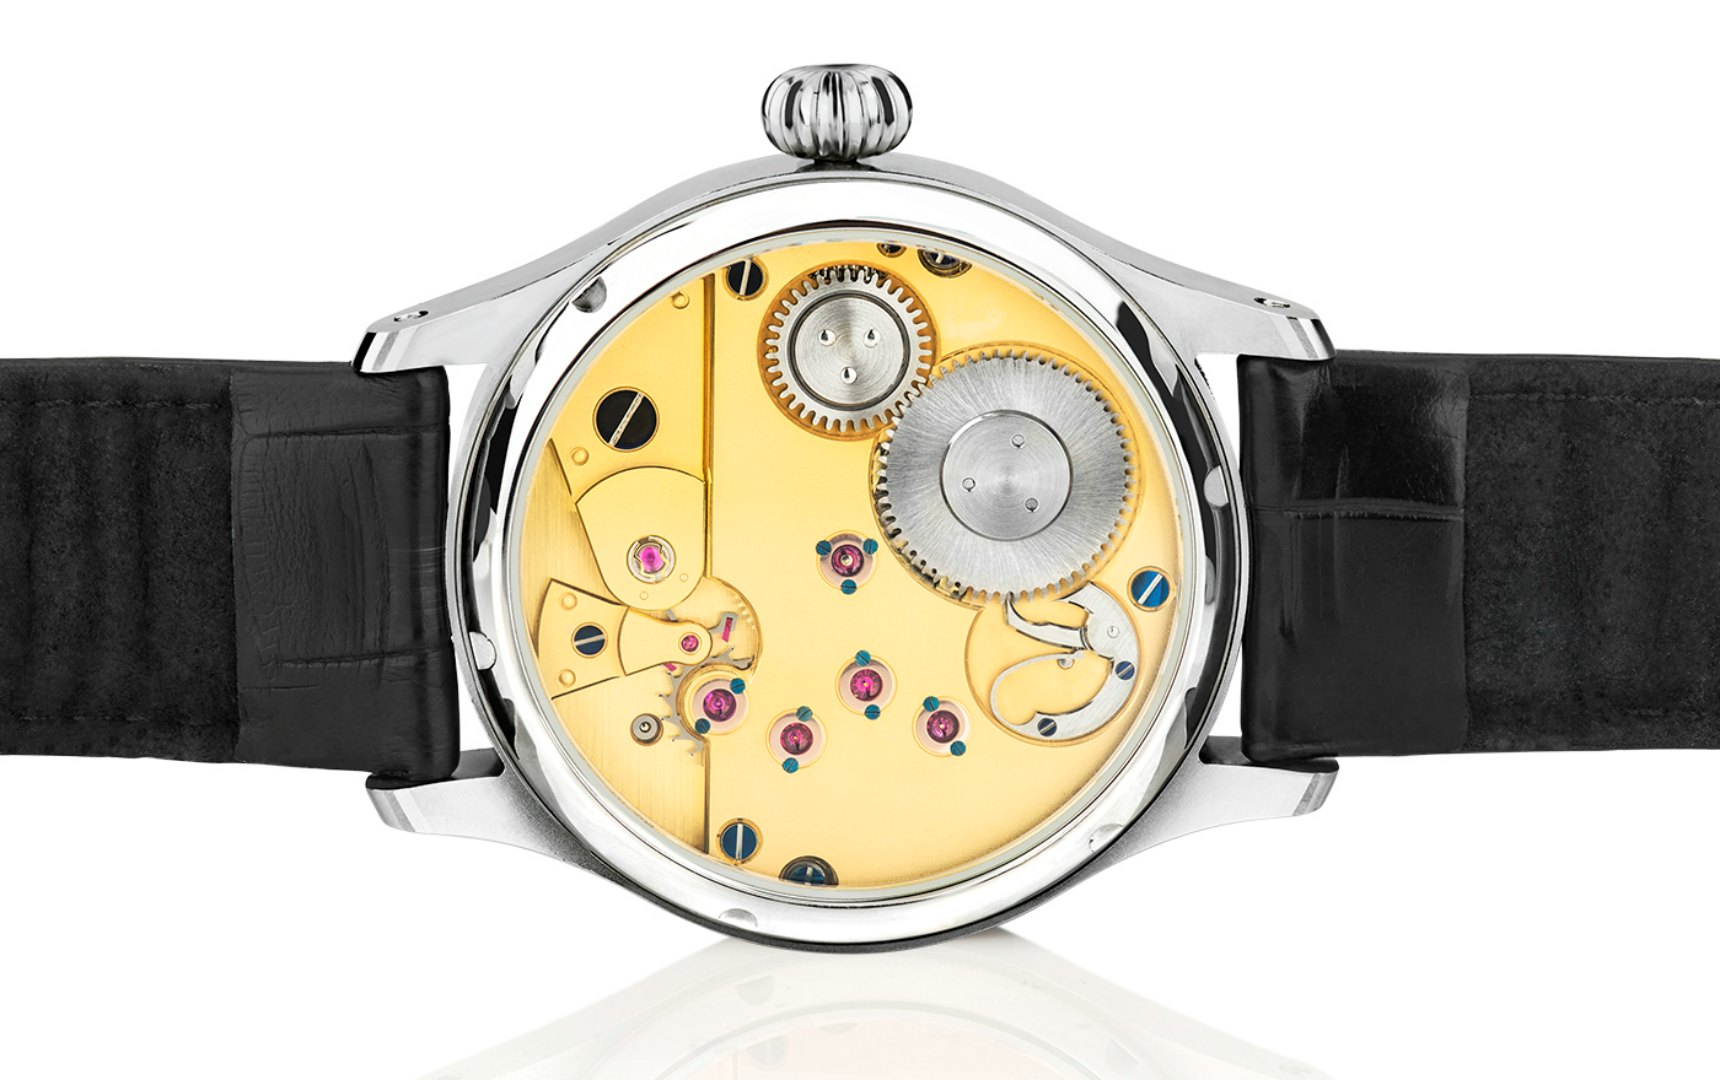 The Garrick English watch movement